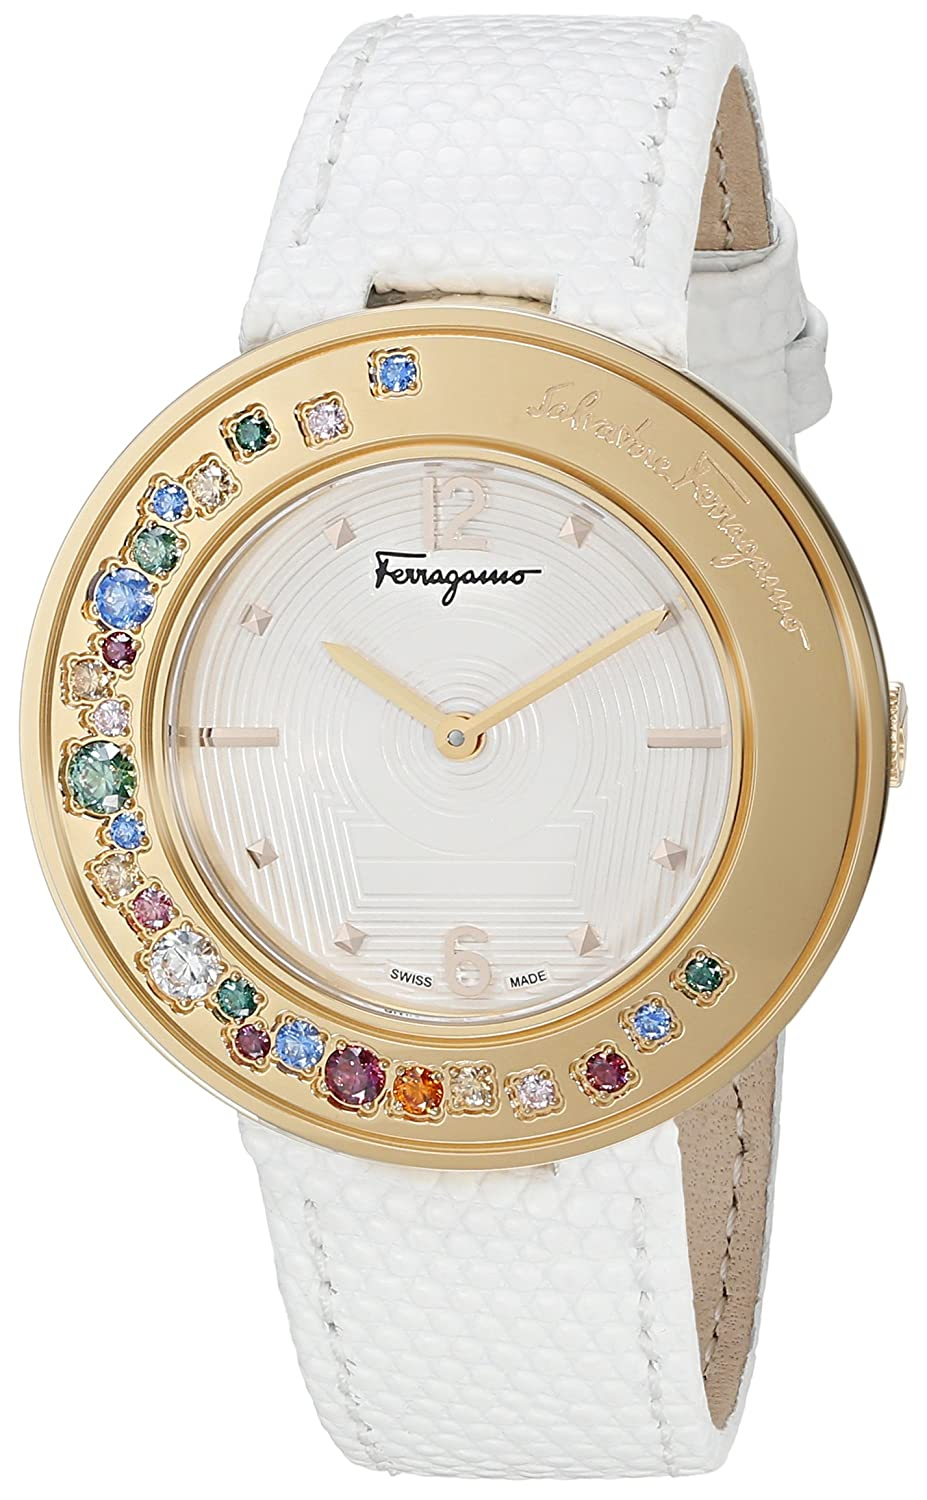 Amazon.com: Salvatore Ferragamo Womens Gancino Sparkling Quartz Stainless Steel and Leather Casual Watch, Color White (Model: FF5900015): Watches